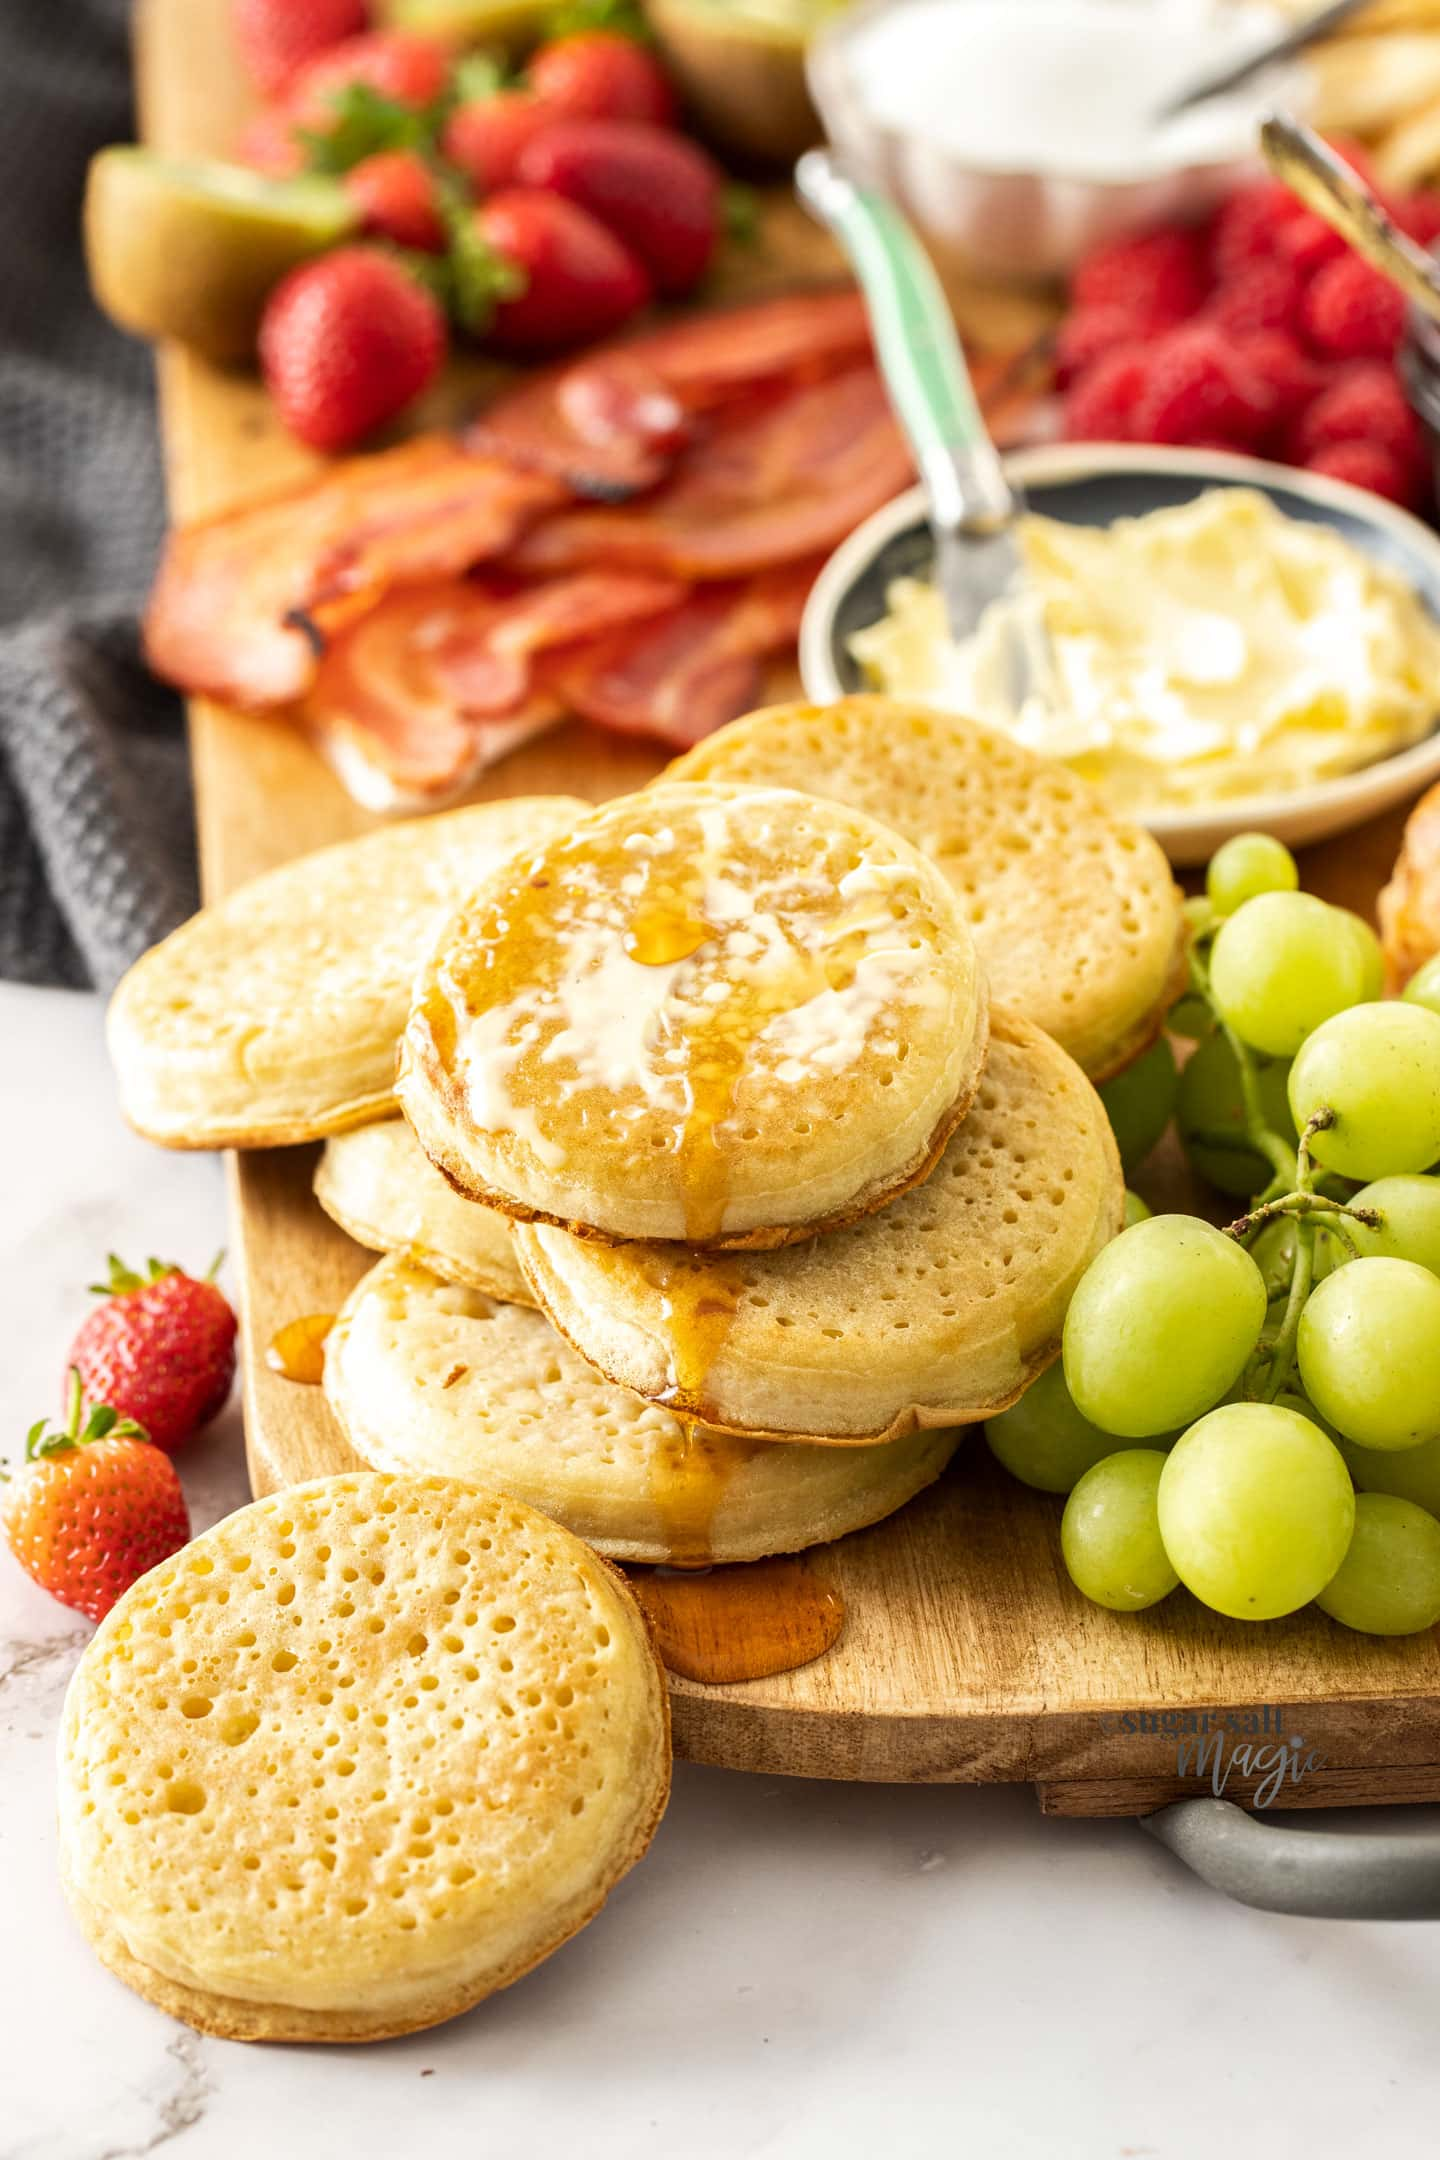 Crumpets dripping with butter and maple syrup.